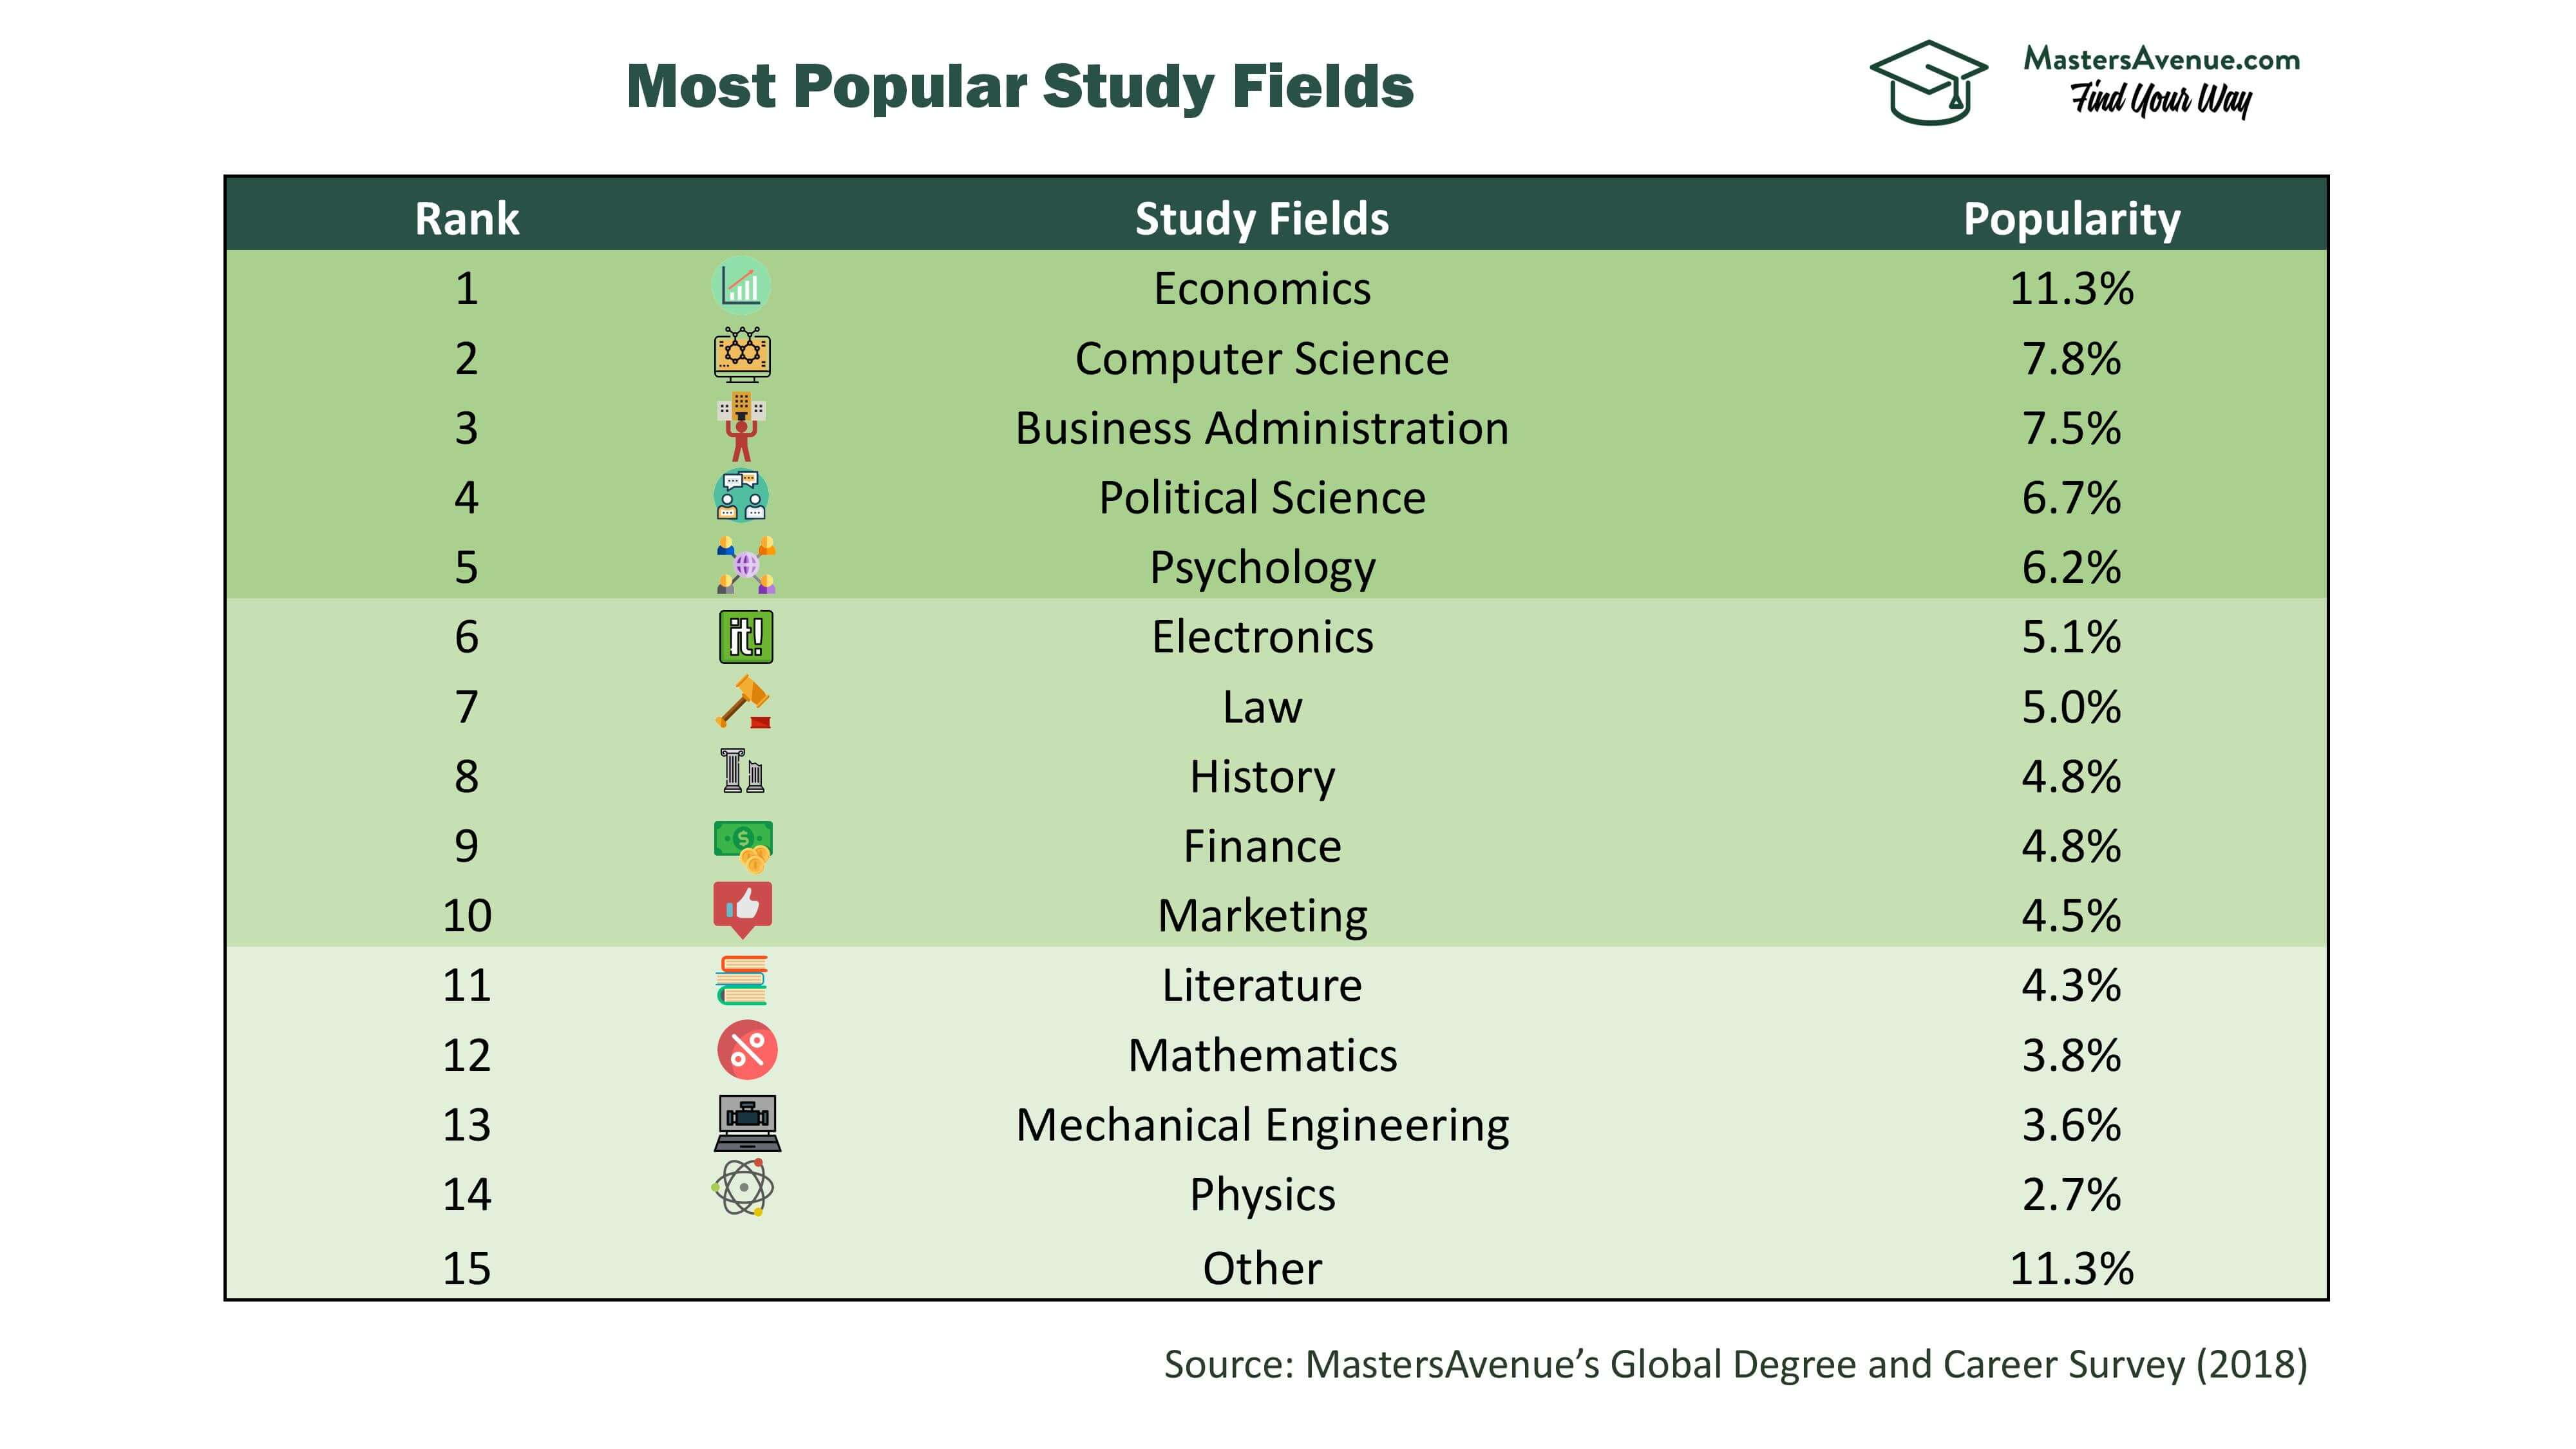 Most Popular Study Fields